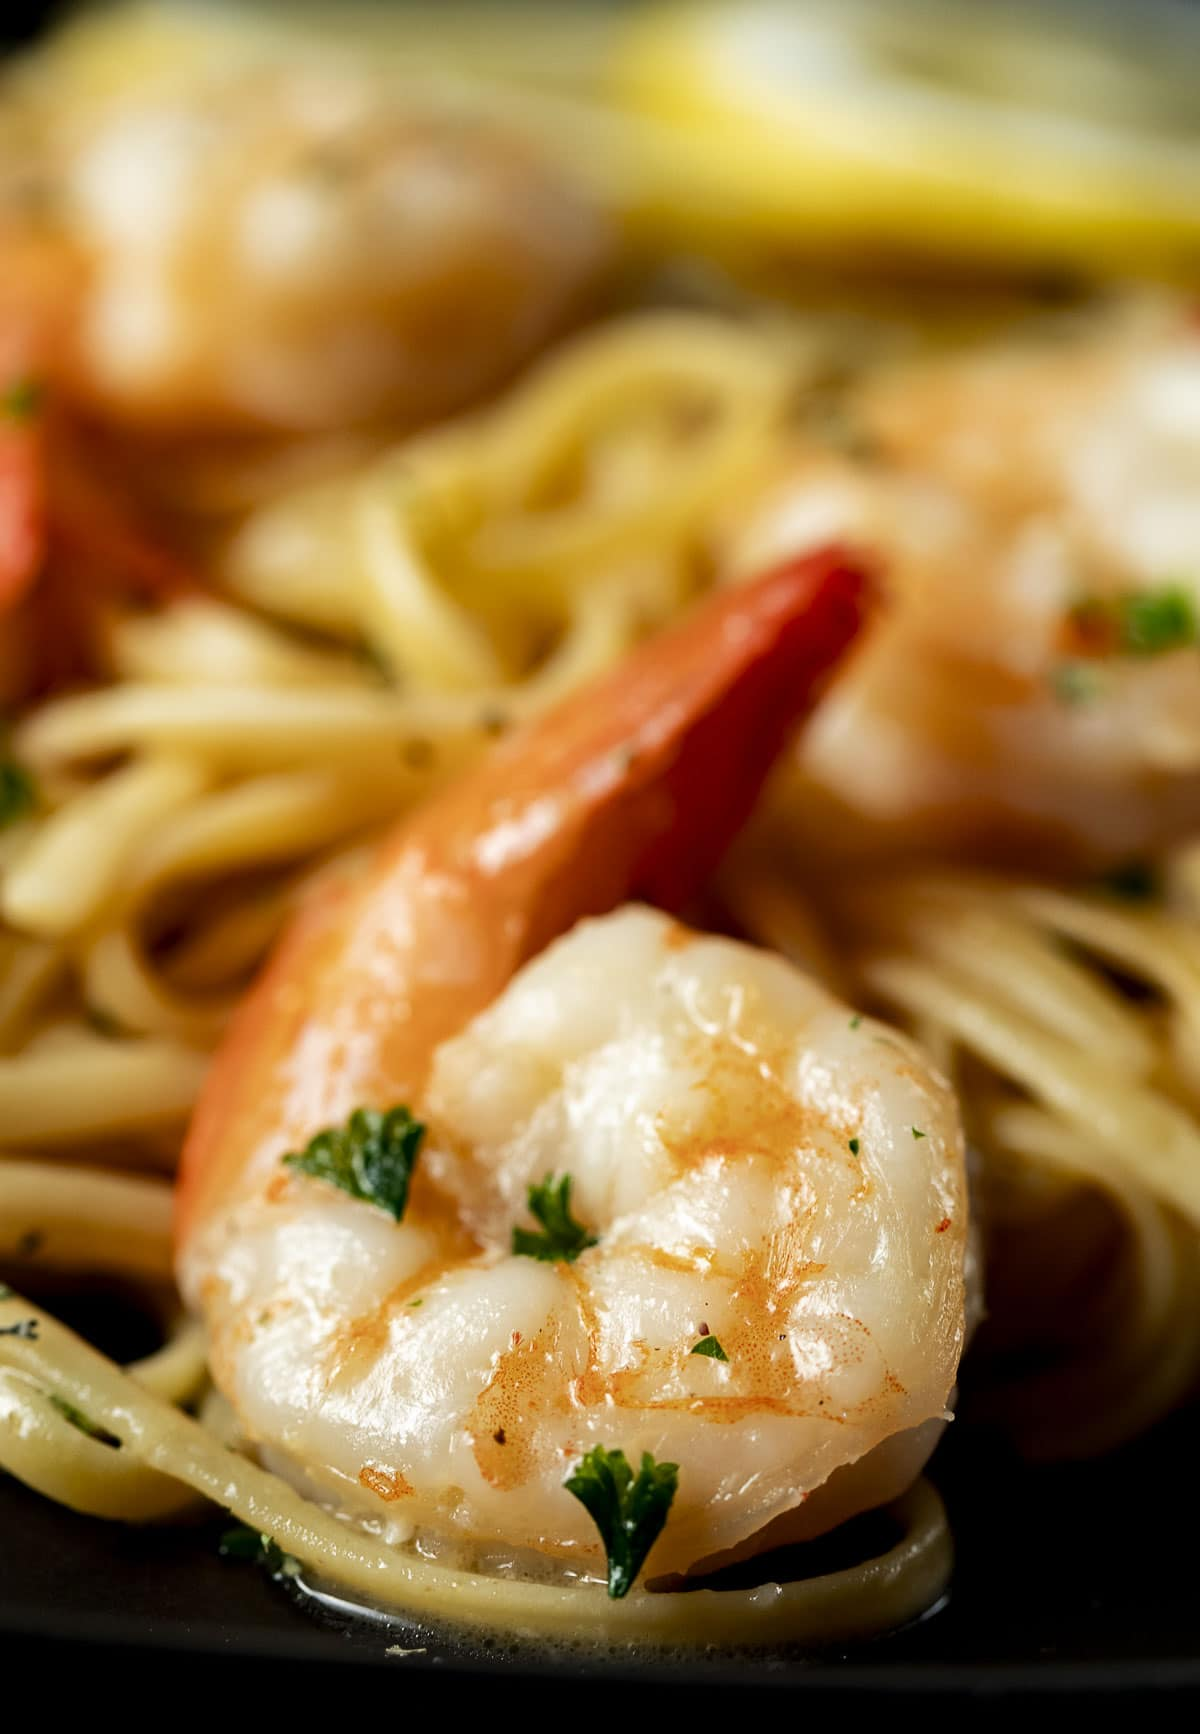 Close up of a cooked shrimp on linguine.